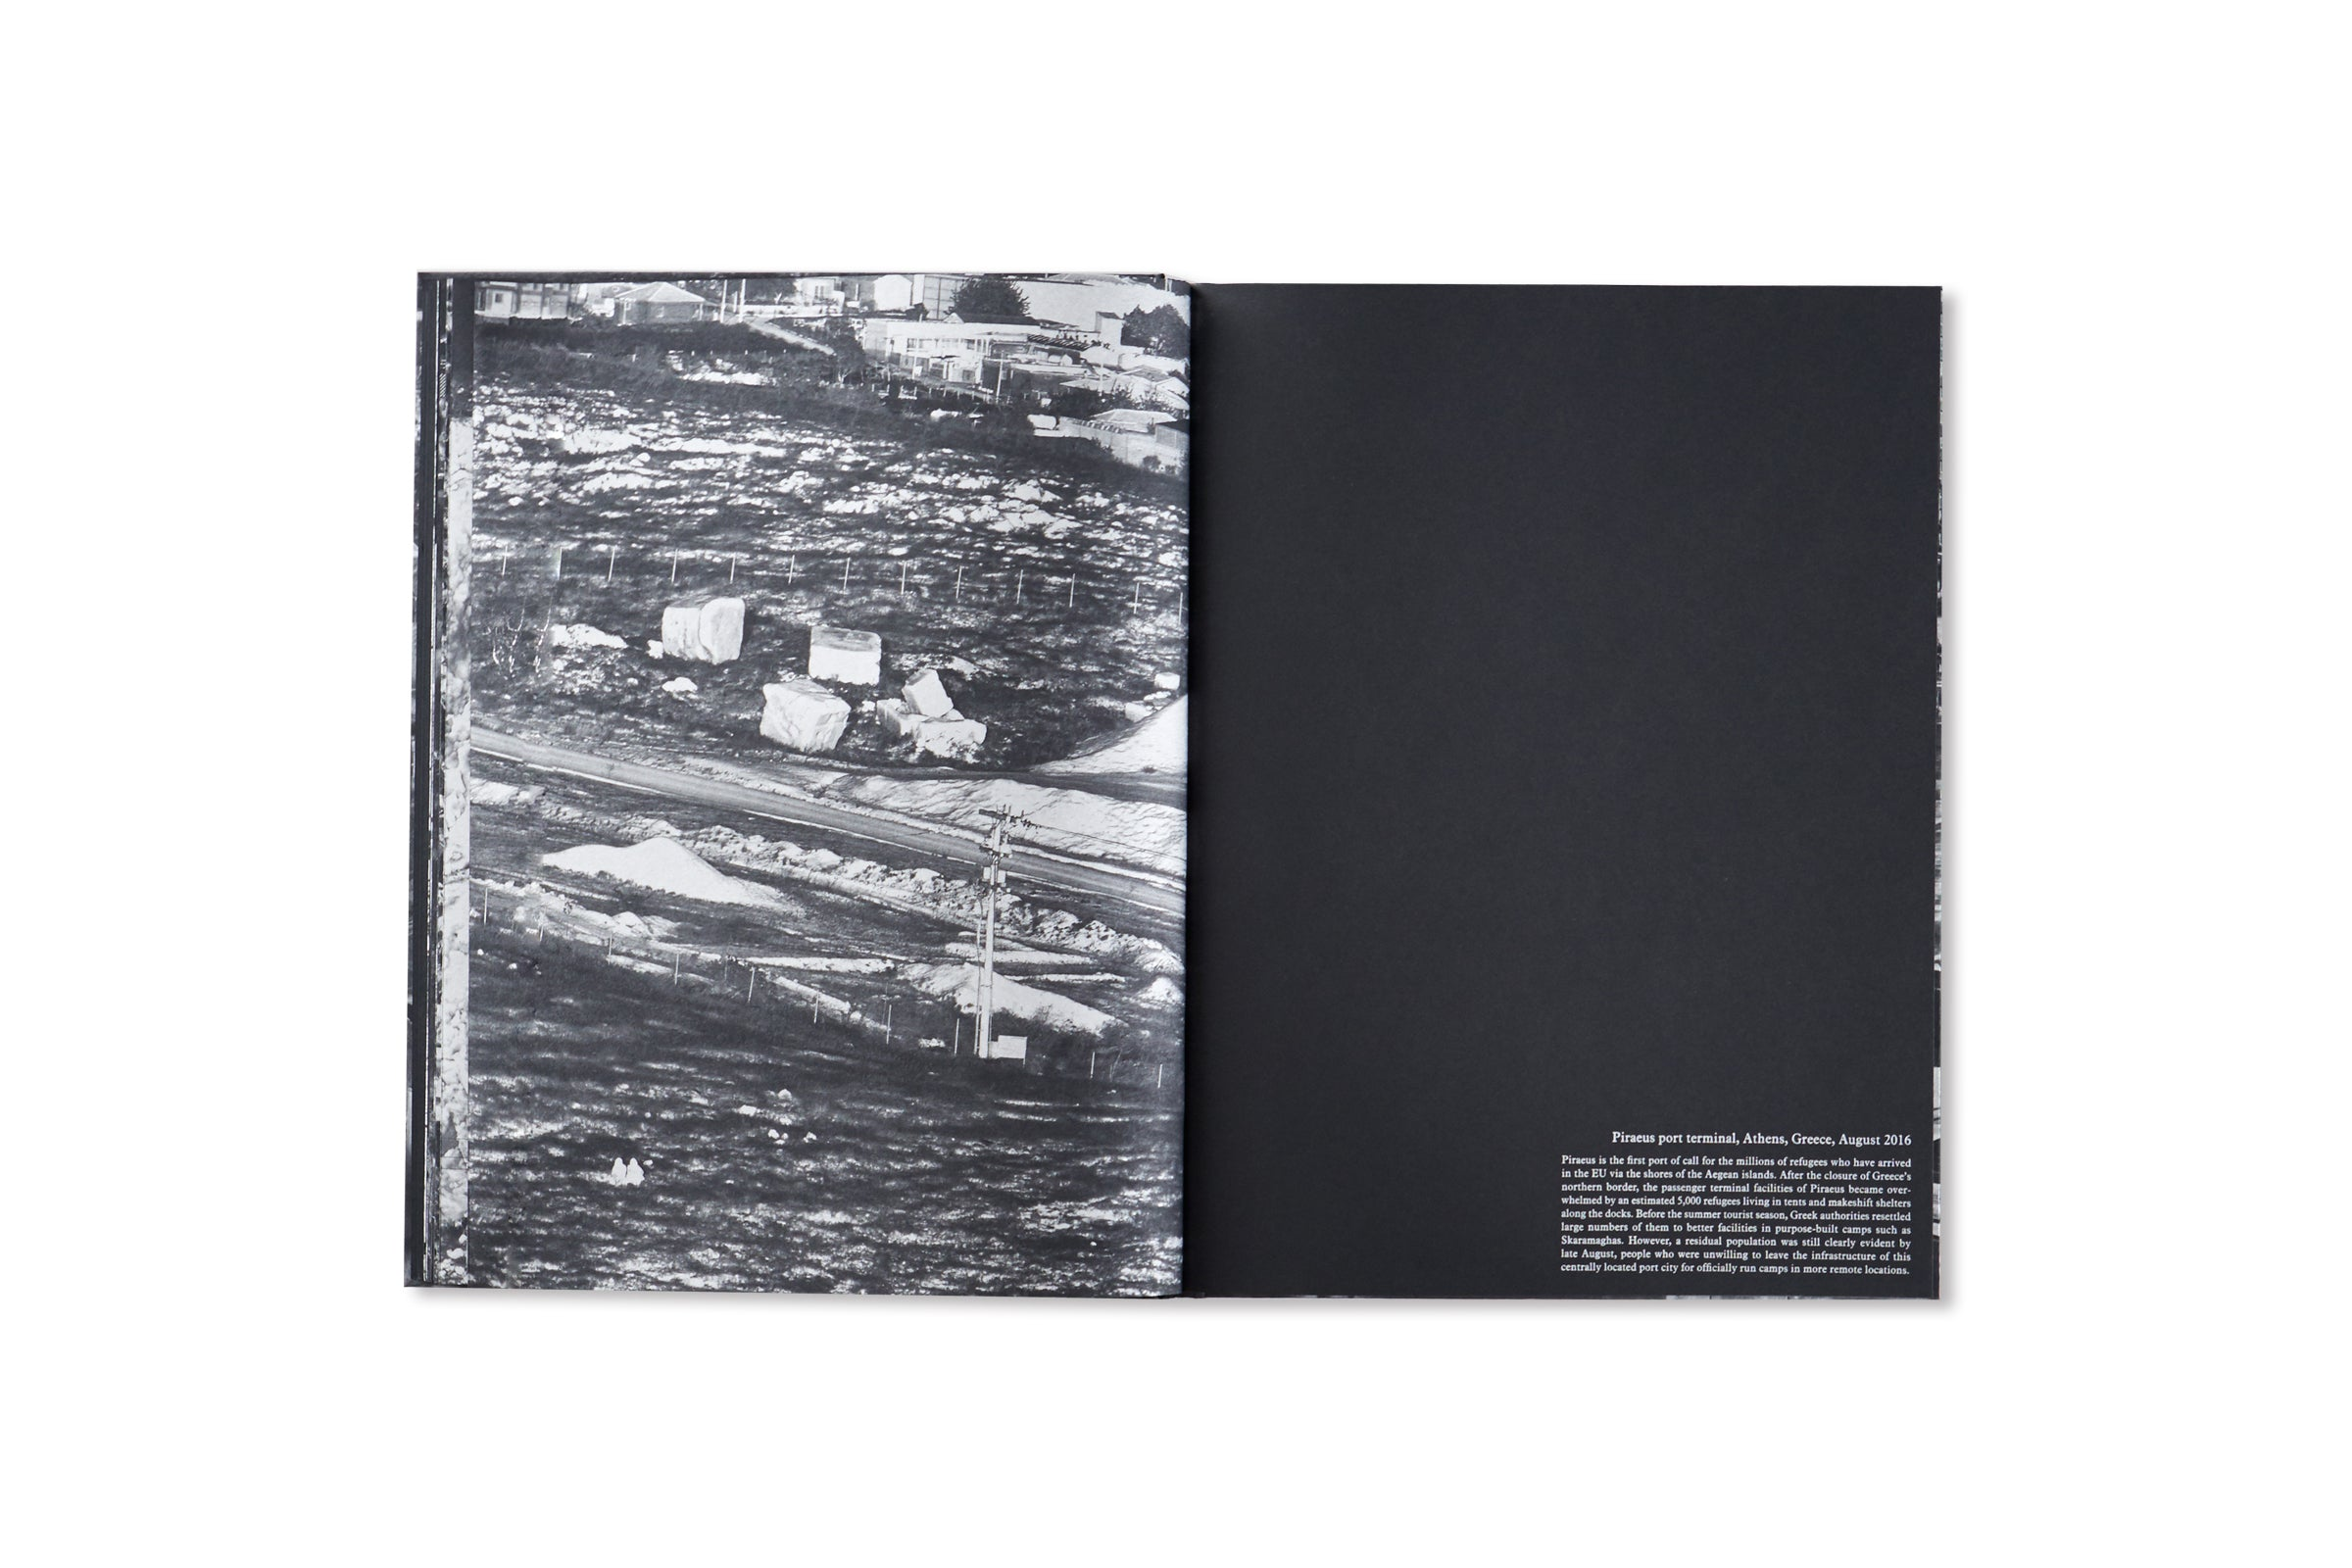 THE CASTLE by Richard Mosse [FIRST EDITION, SECOND PRINTING]